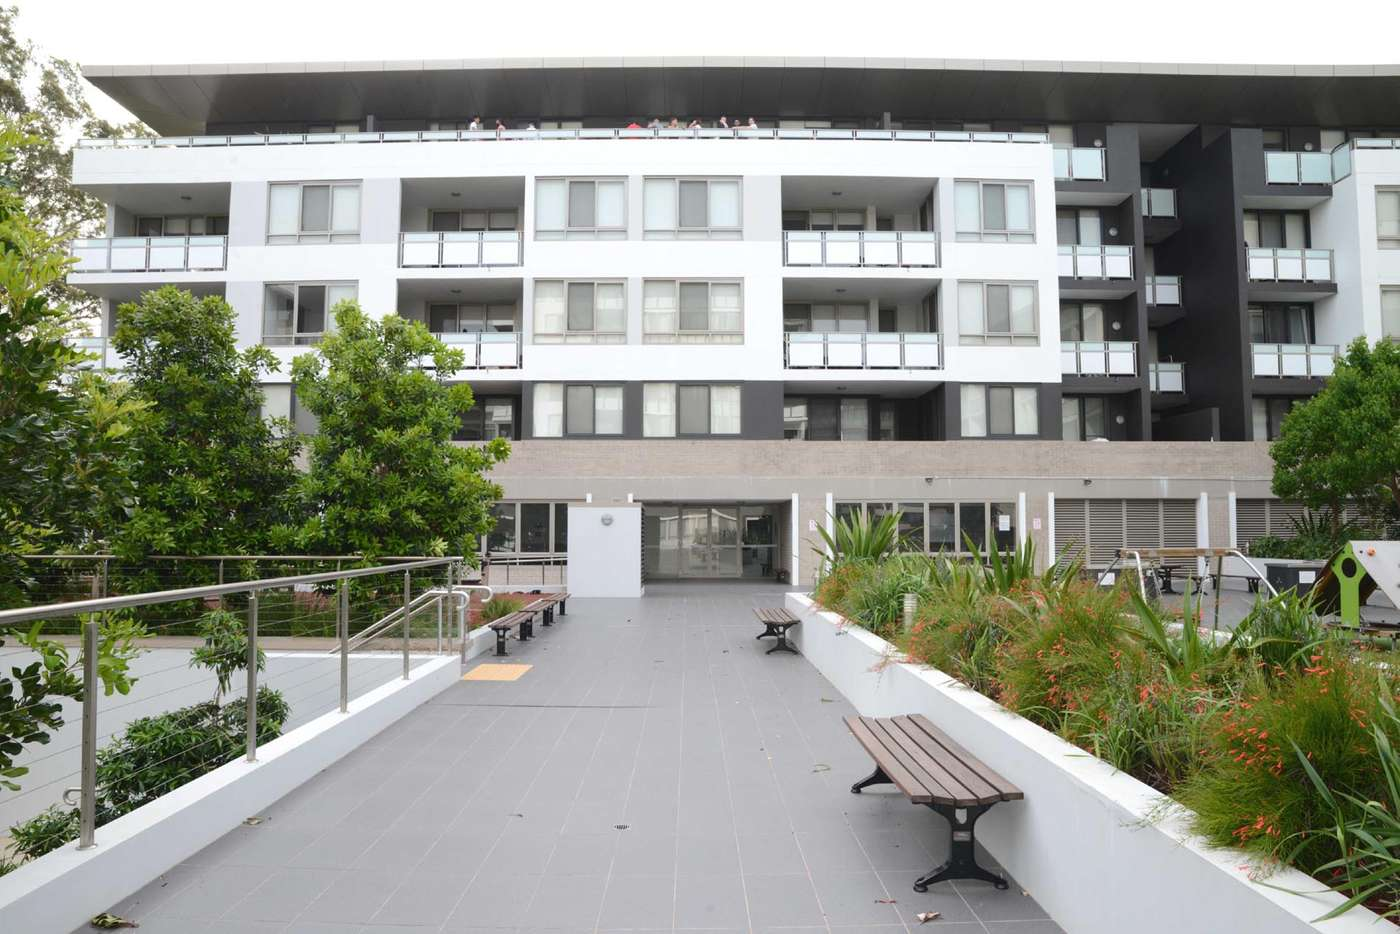 Main view of Homely apartment listing, 3208/1A Morton Street, Parramatta NSW 2150